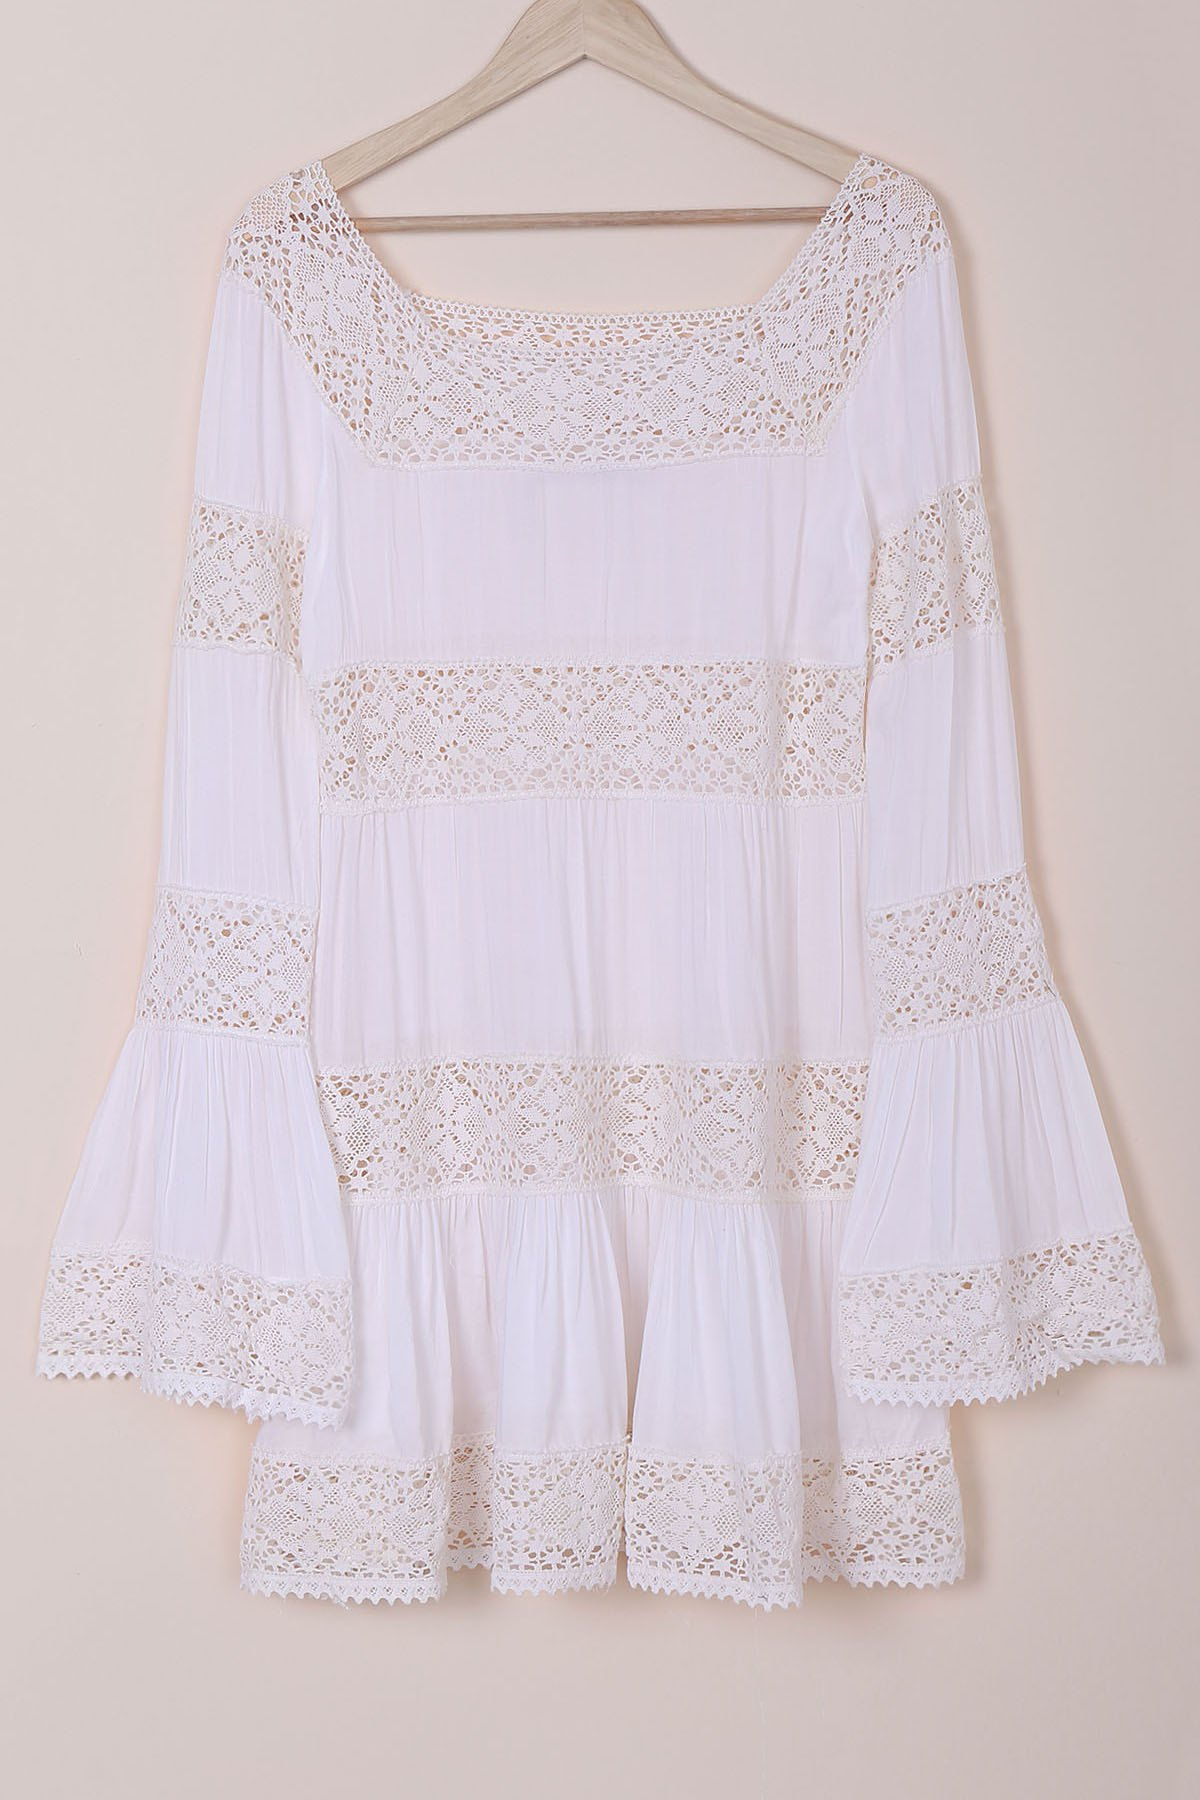 Flare Long Sleeve Lace Insert Tunic Dress - WHITE L